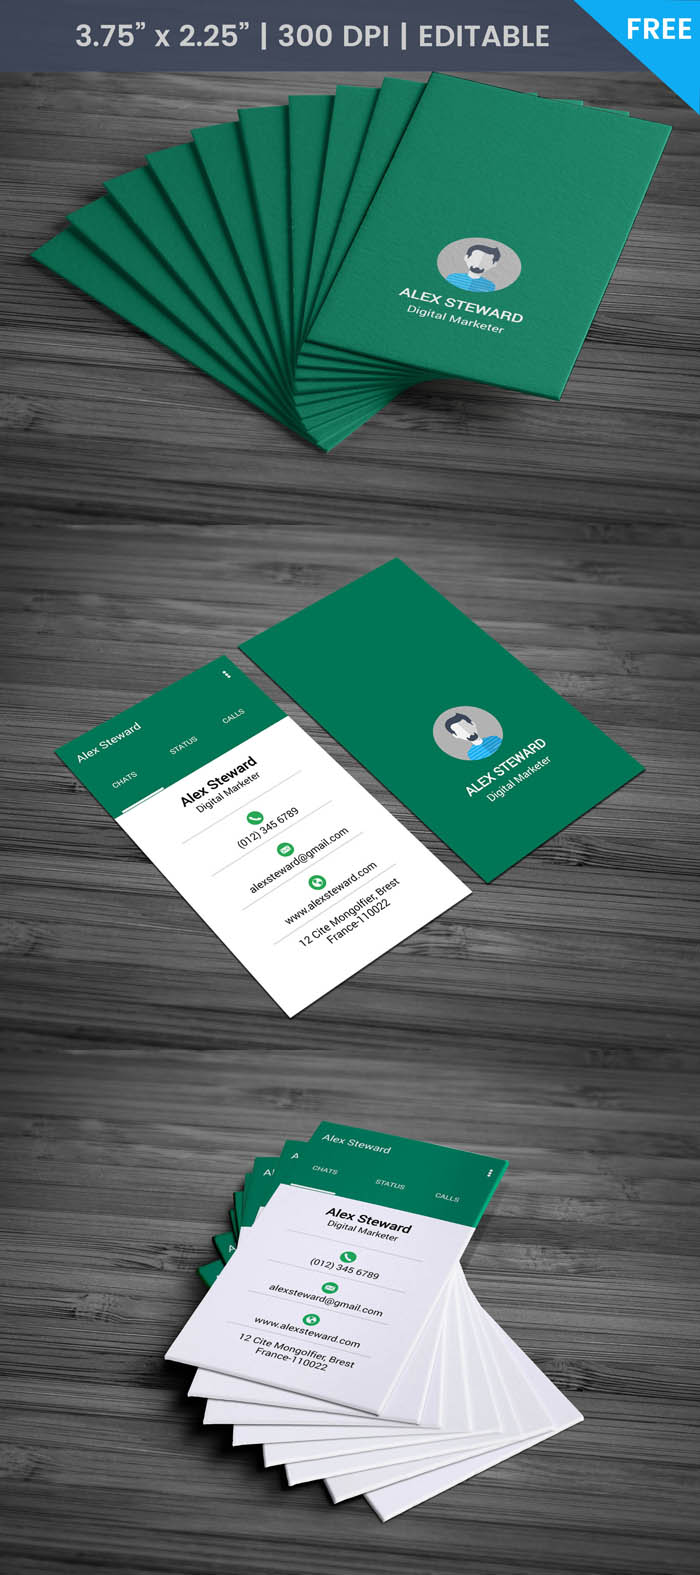 Free Whatsapp Themed Business Card Template